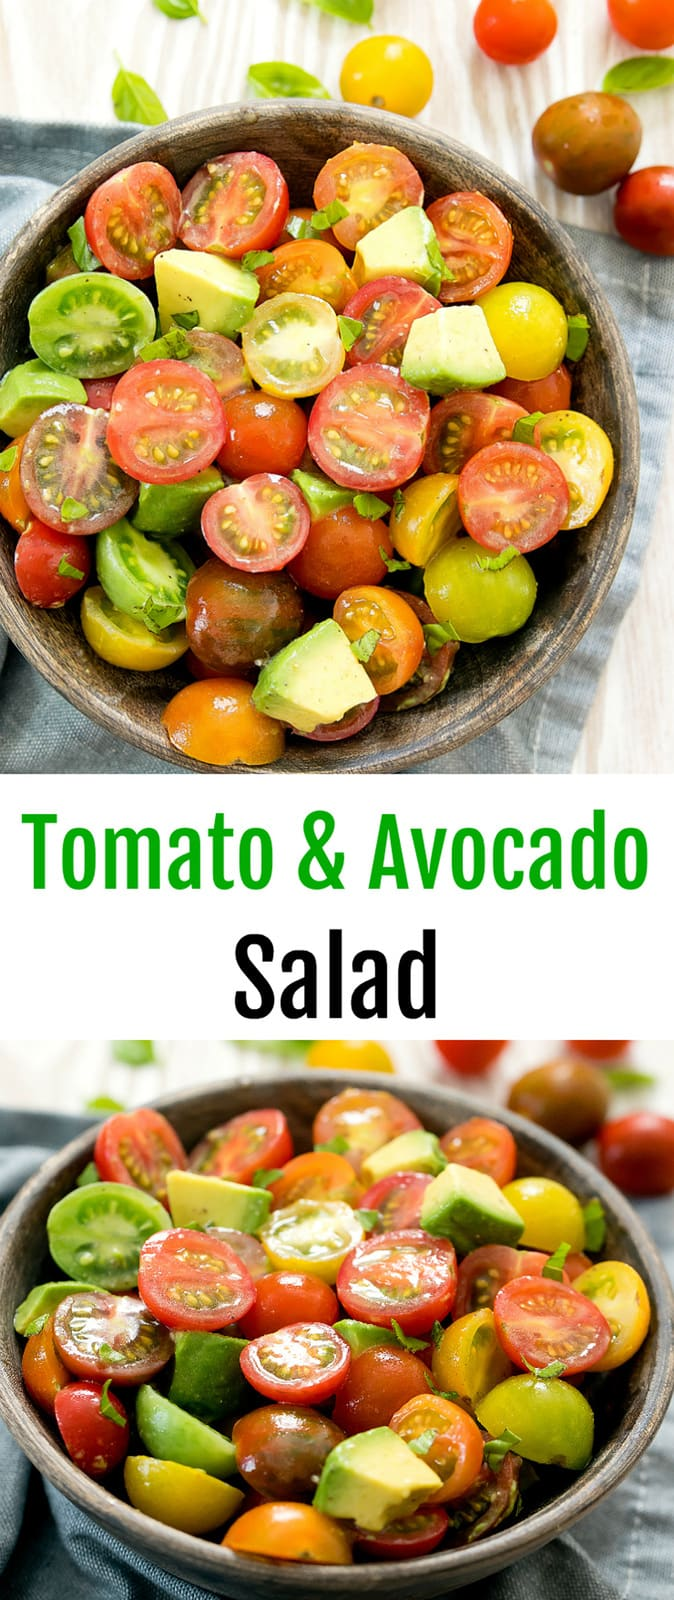 Tomato Avocado Salad. An easy simple salad that is very tasty and perfect for summer. #tomatosalad #tomatoavocado #summersalad